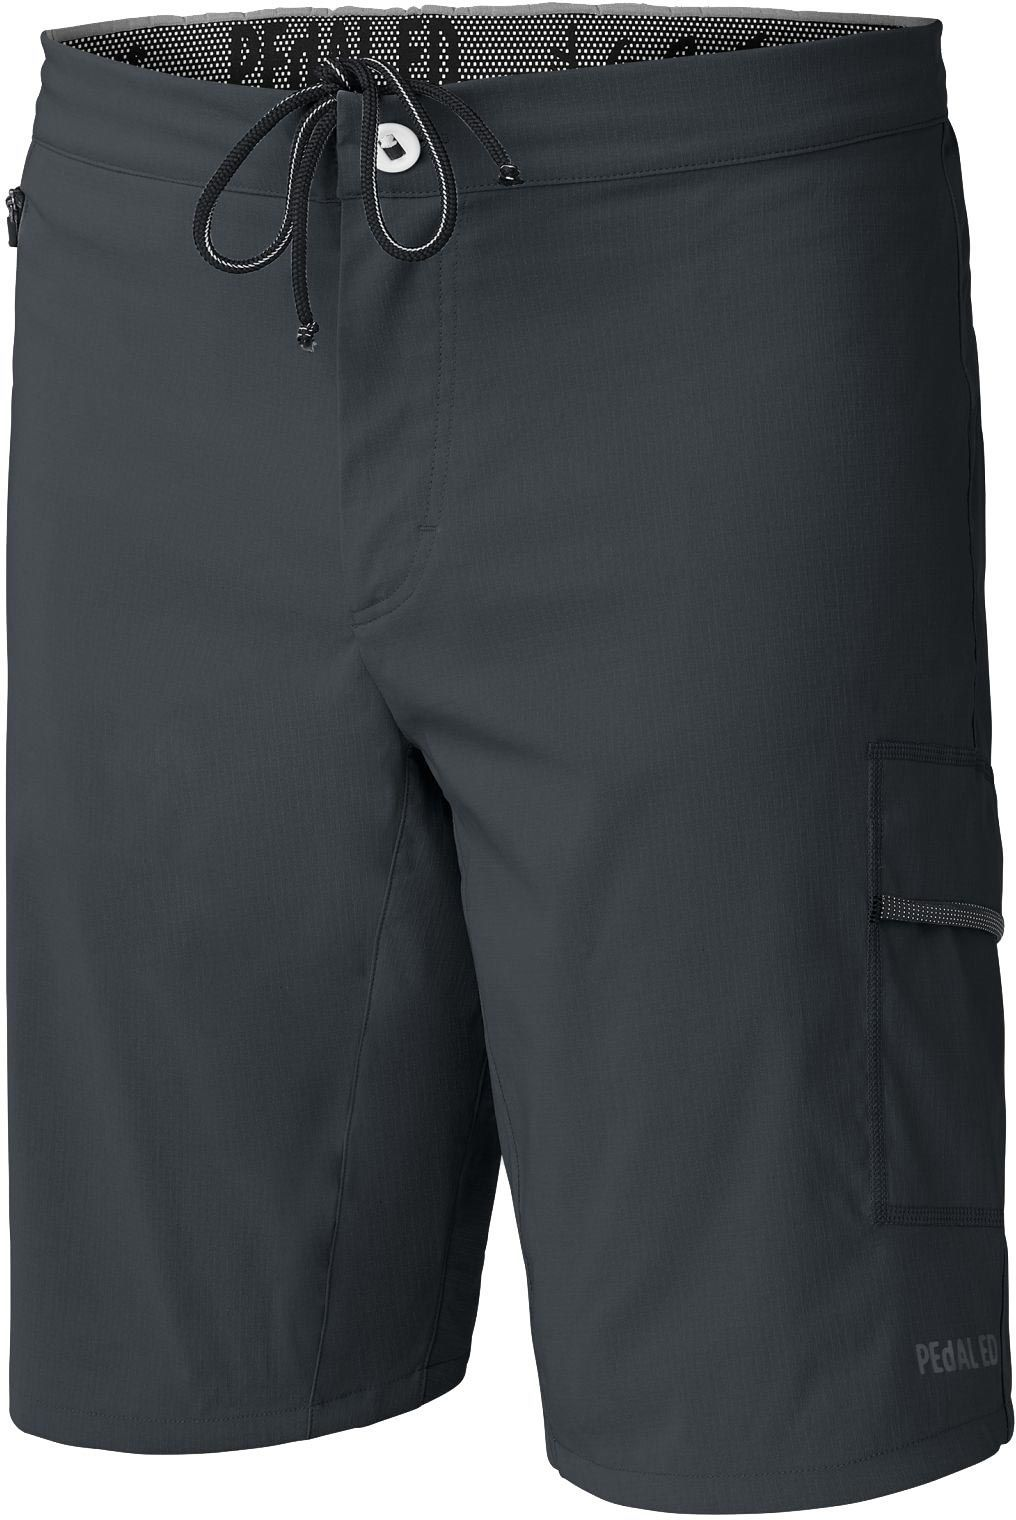 PEdAL ED Jary All-road Shorts - charcoal grey M